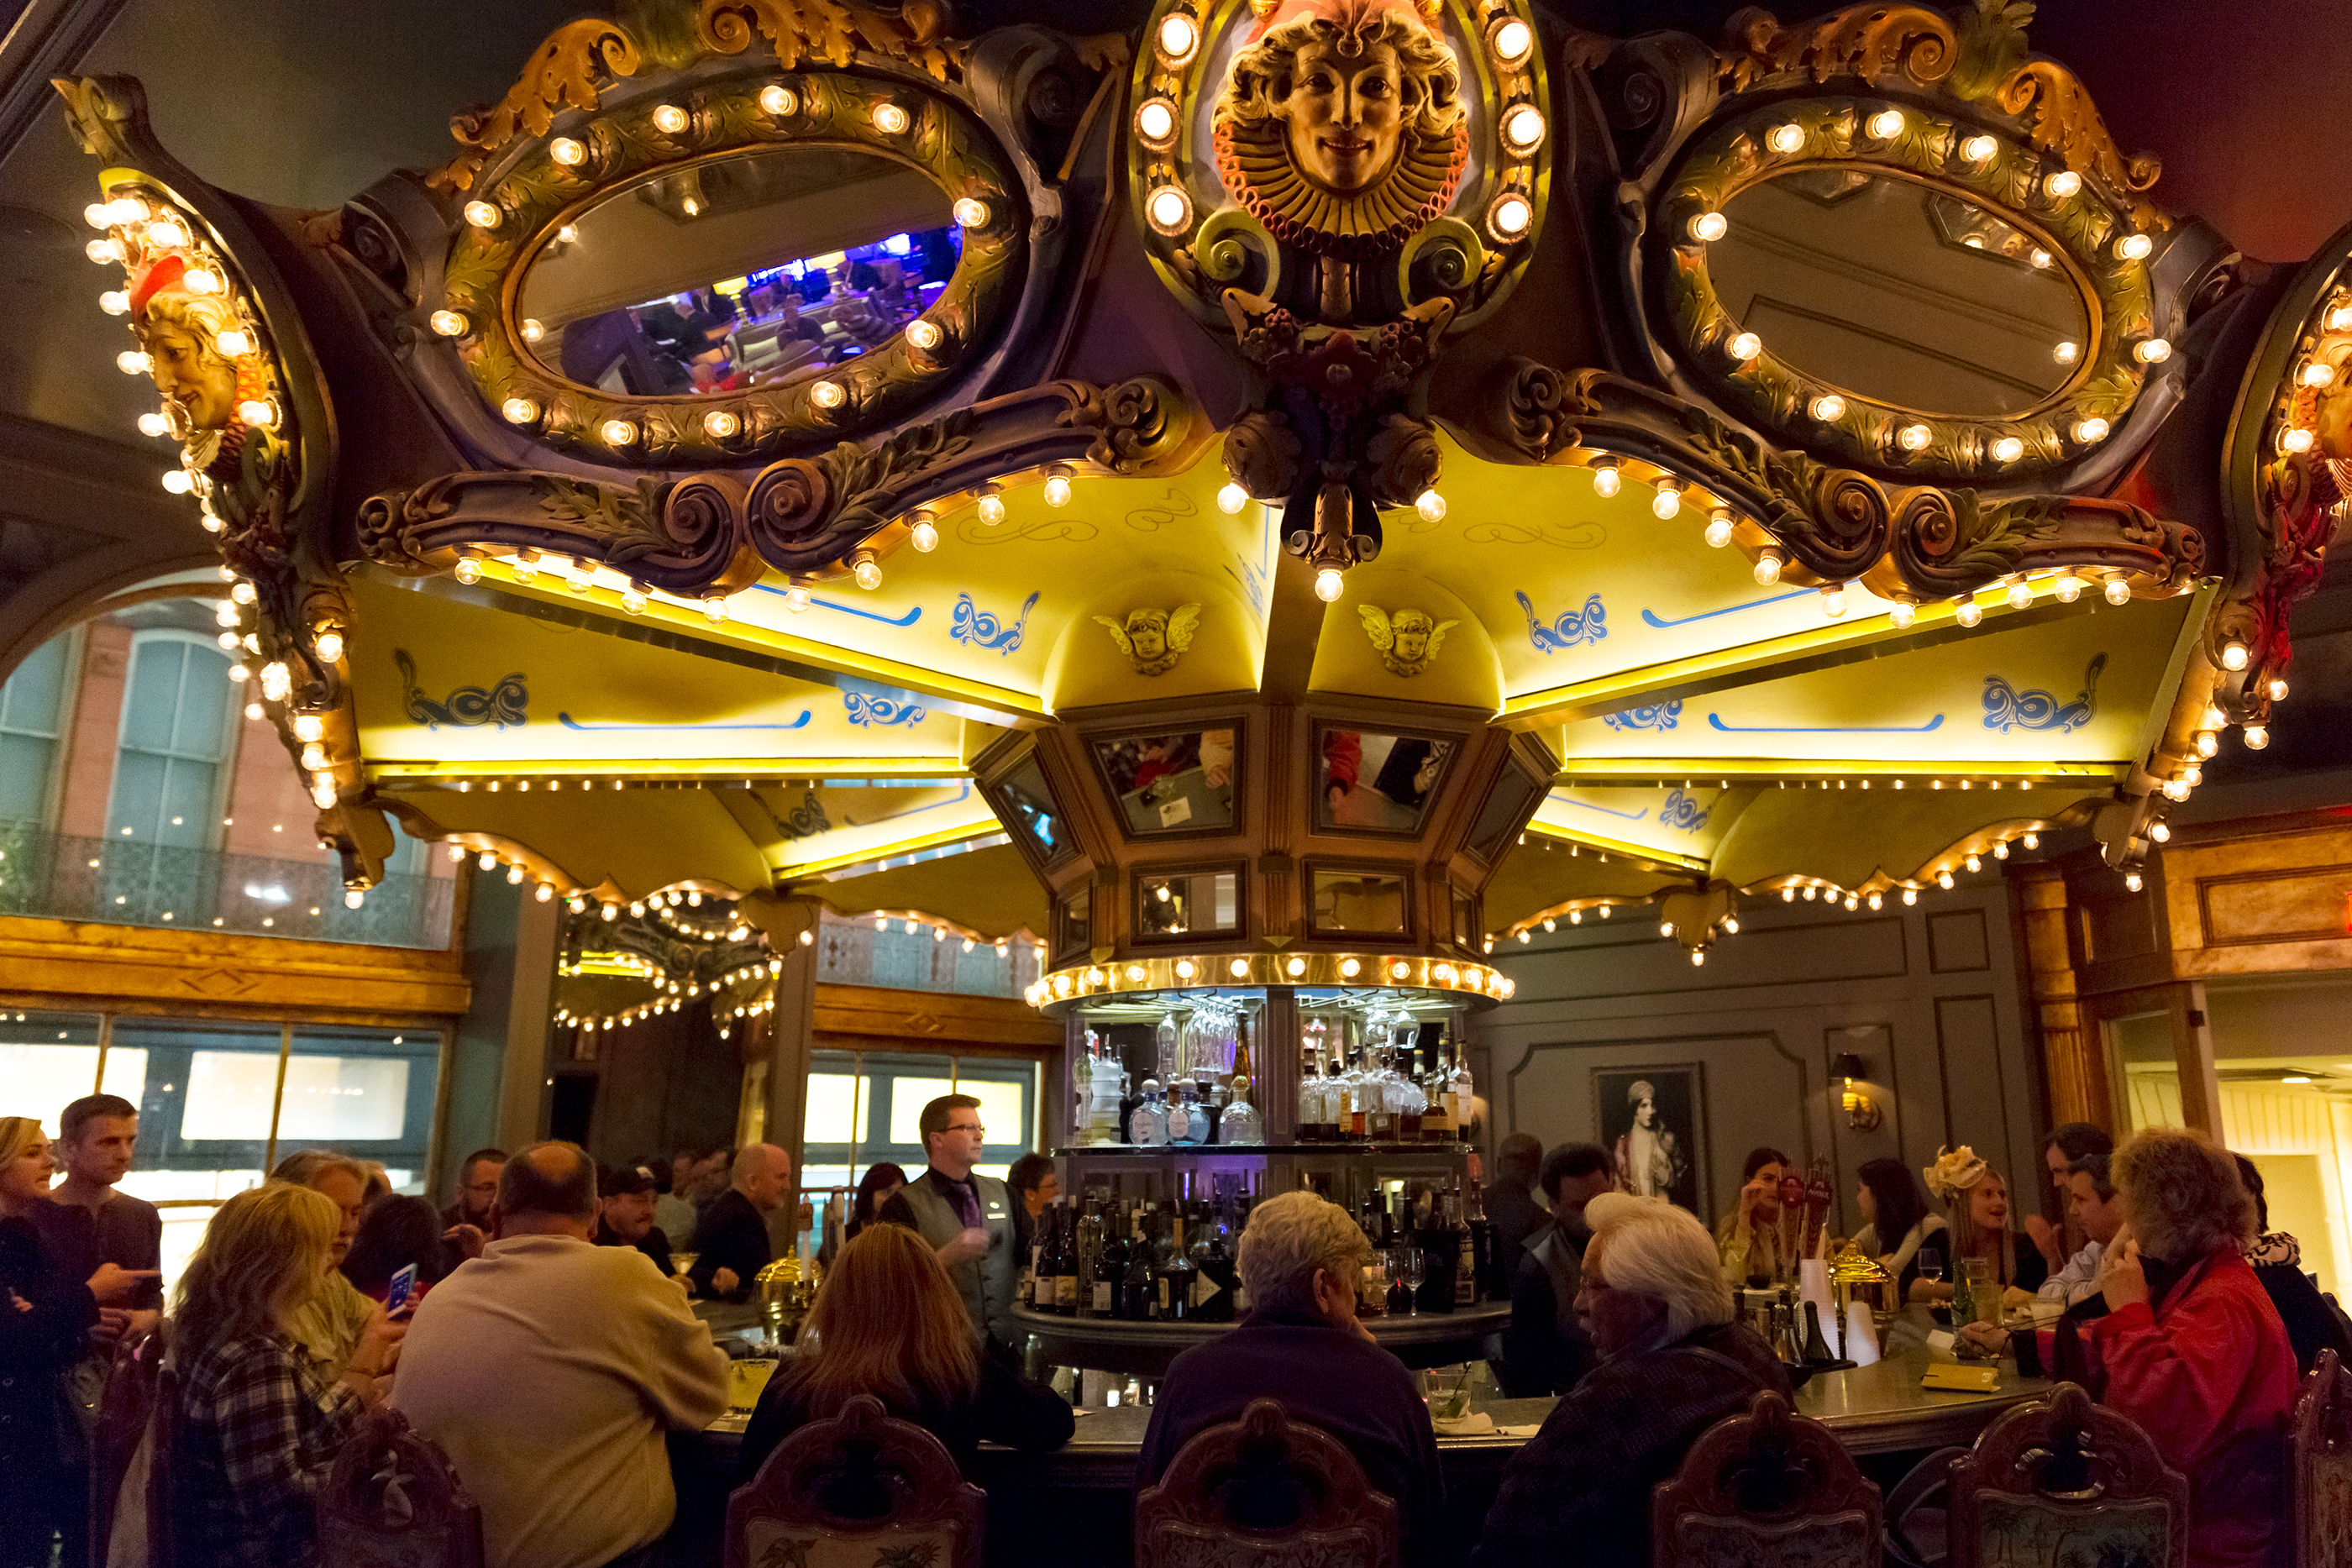 170913-BPL-drinking-cities-new-orleans-carousel-bar